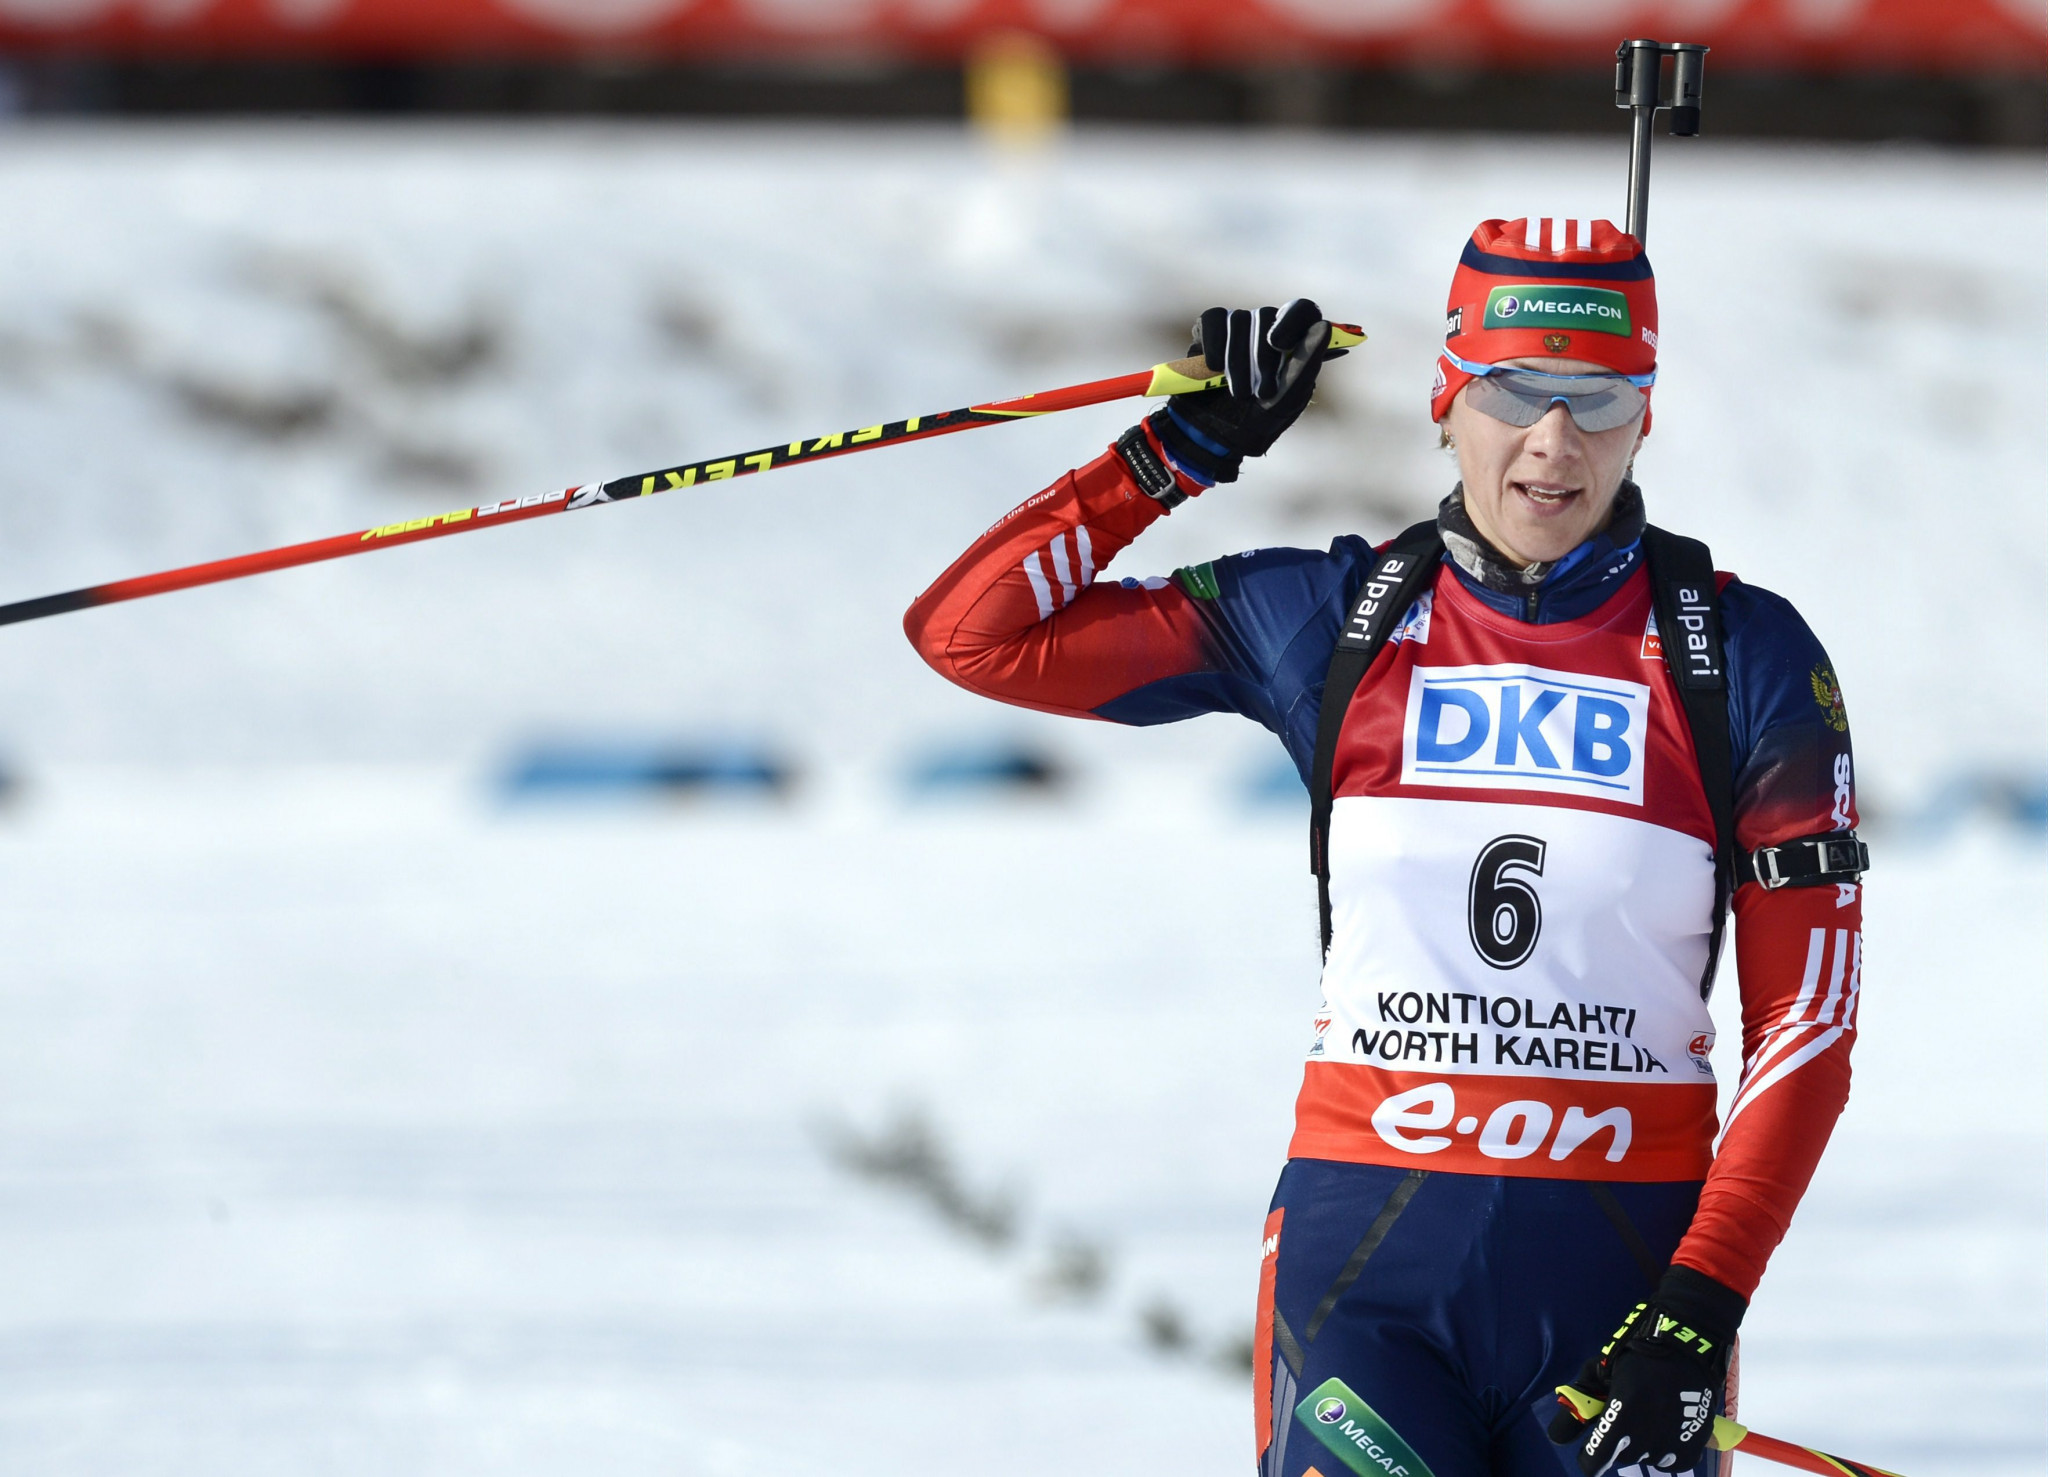 Two-time Olympic biathlon champion Olga Zaitseva is also under investigation by the Disciplinary Commission ©Getty Images